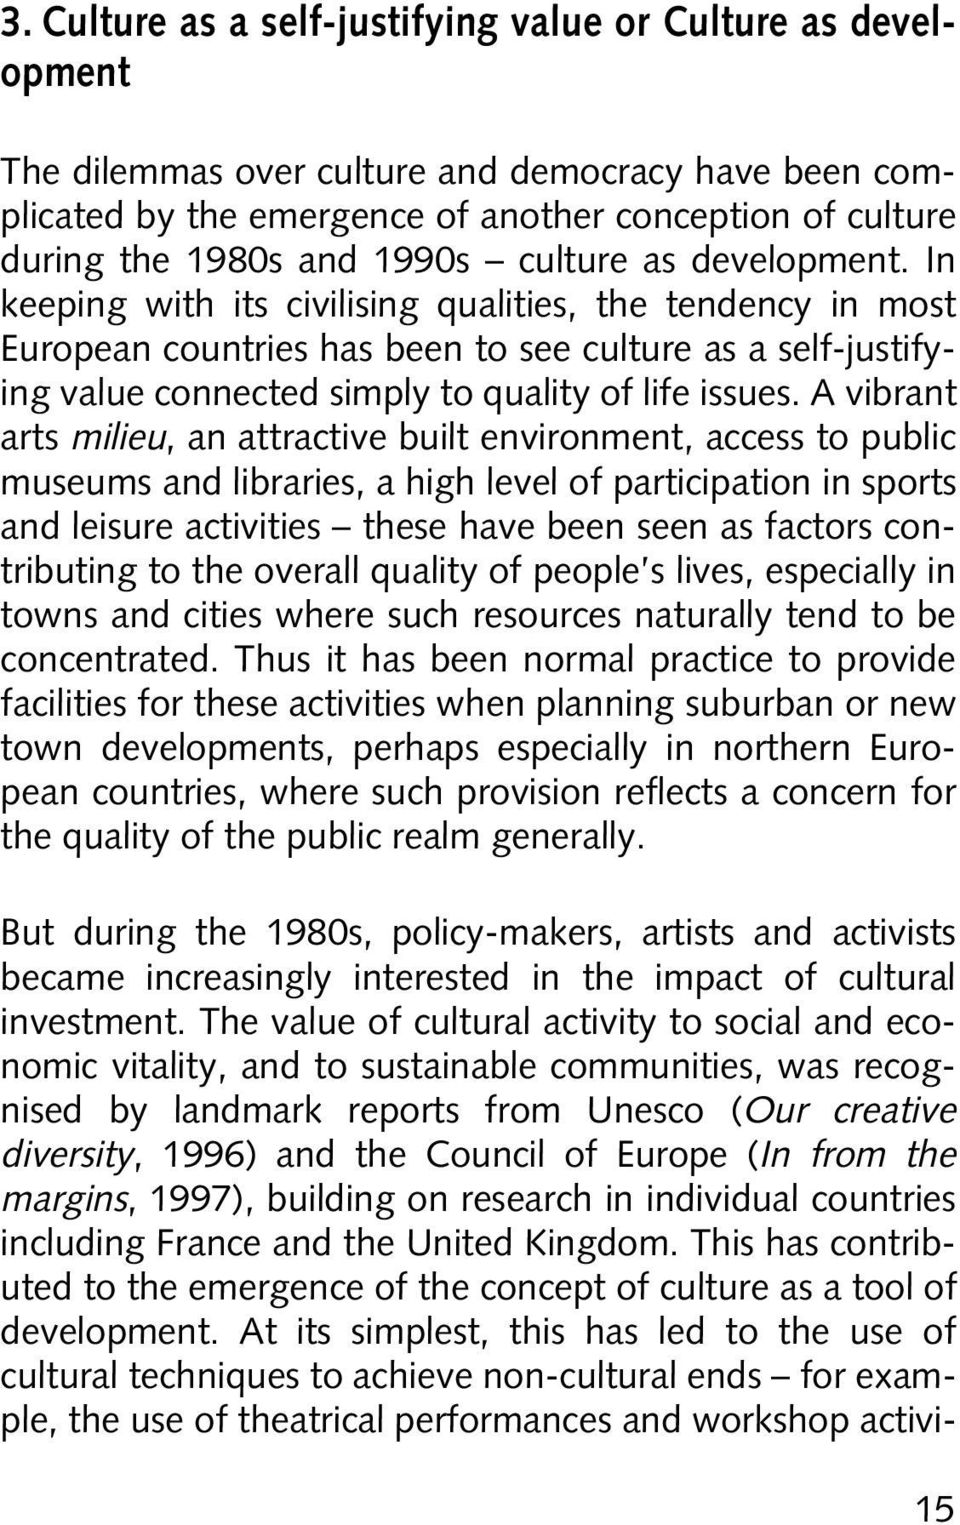 In keeping with its civilising qualities, the tendency in most European countries has been to see culture as a self-justifying value connected simply to quality of life issues.